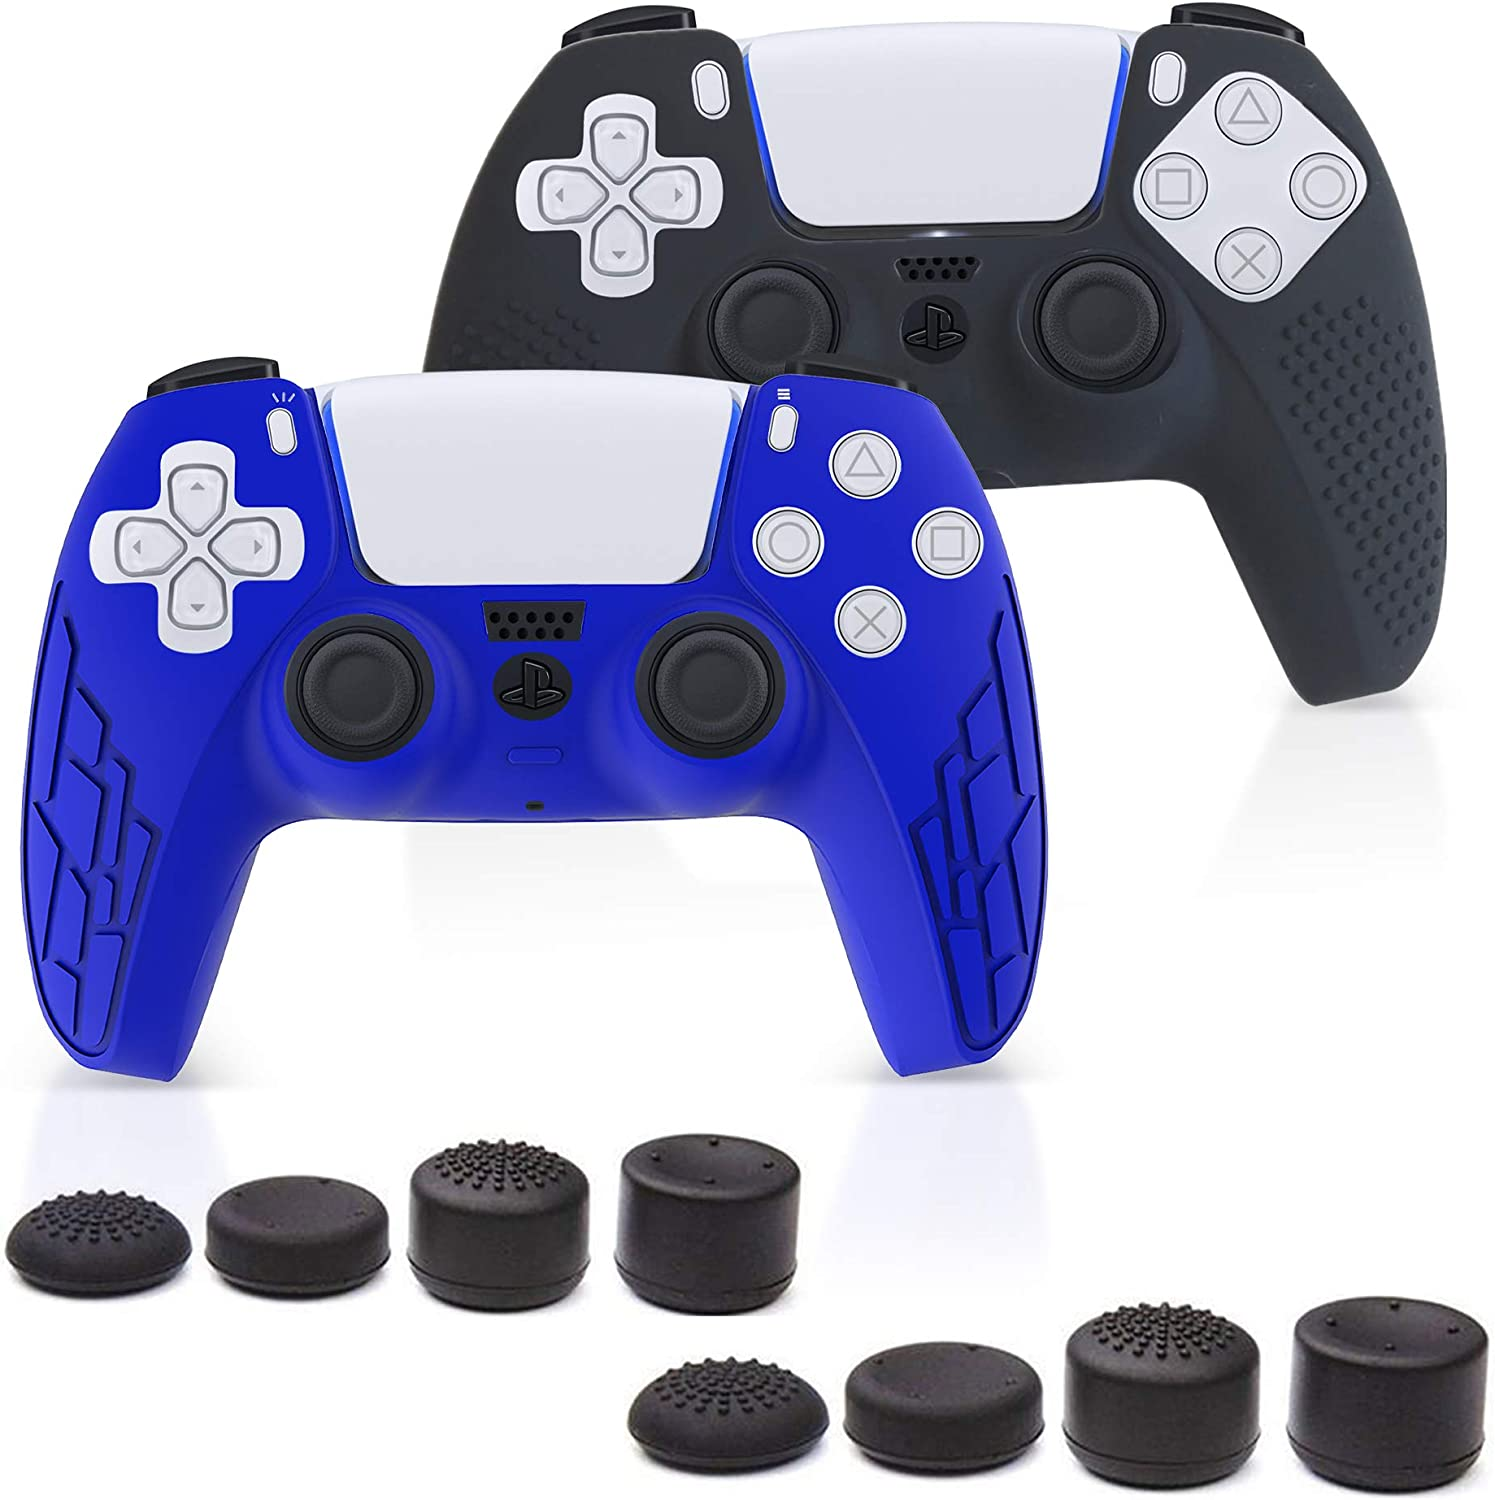 PS5 Silicone Controller Skin – Premium Controllers Skin Grip Compatible with PS5 – Anti-Slip Silicone Cover Protectors (2 Pack) – Different Texture + 8 Thumbs Controller Grips (Blue/Black)